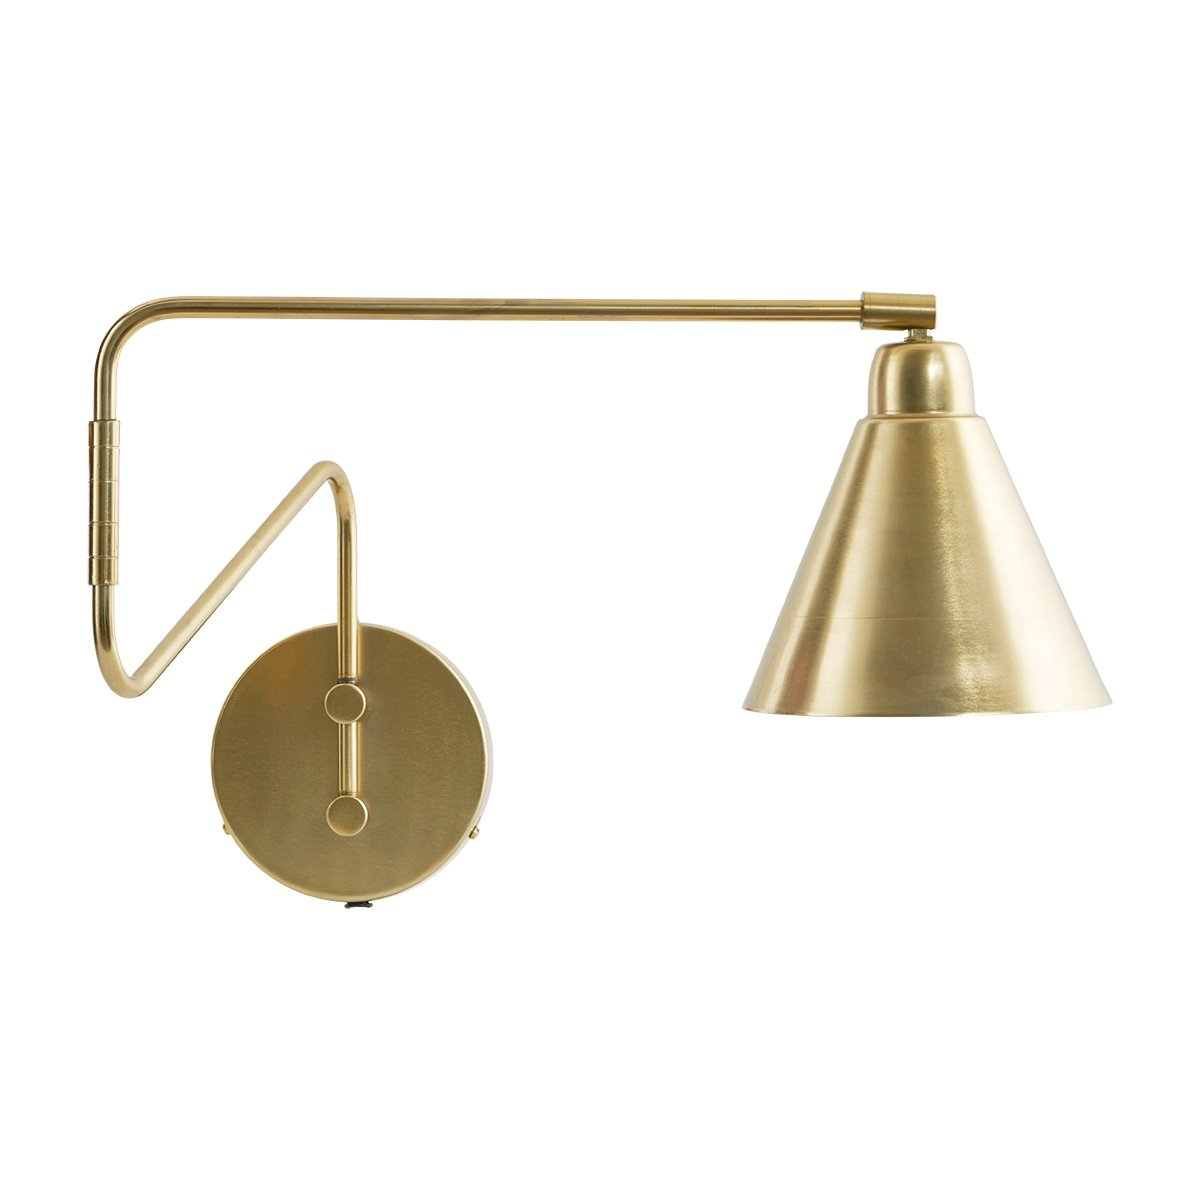 Brass Swivel Wall Light